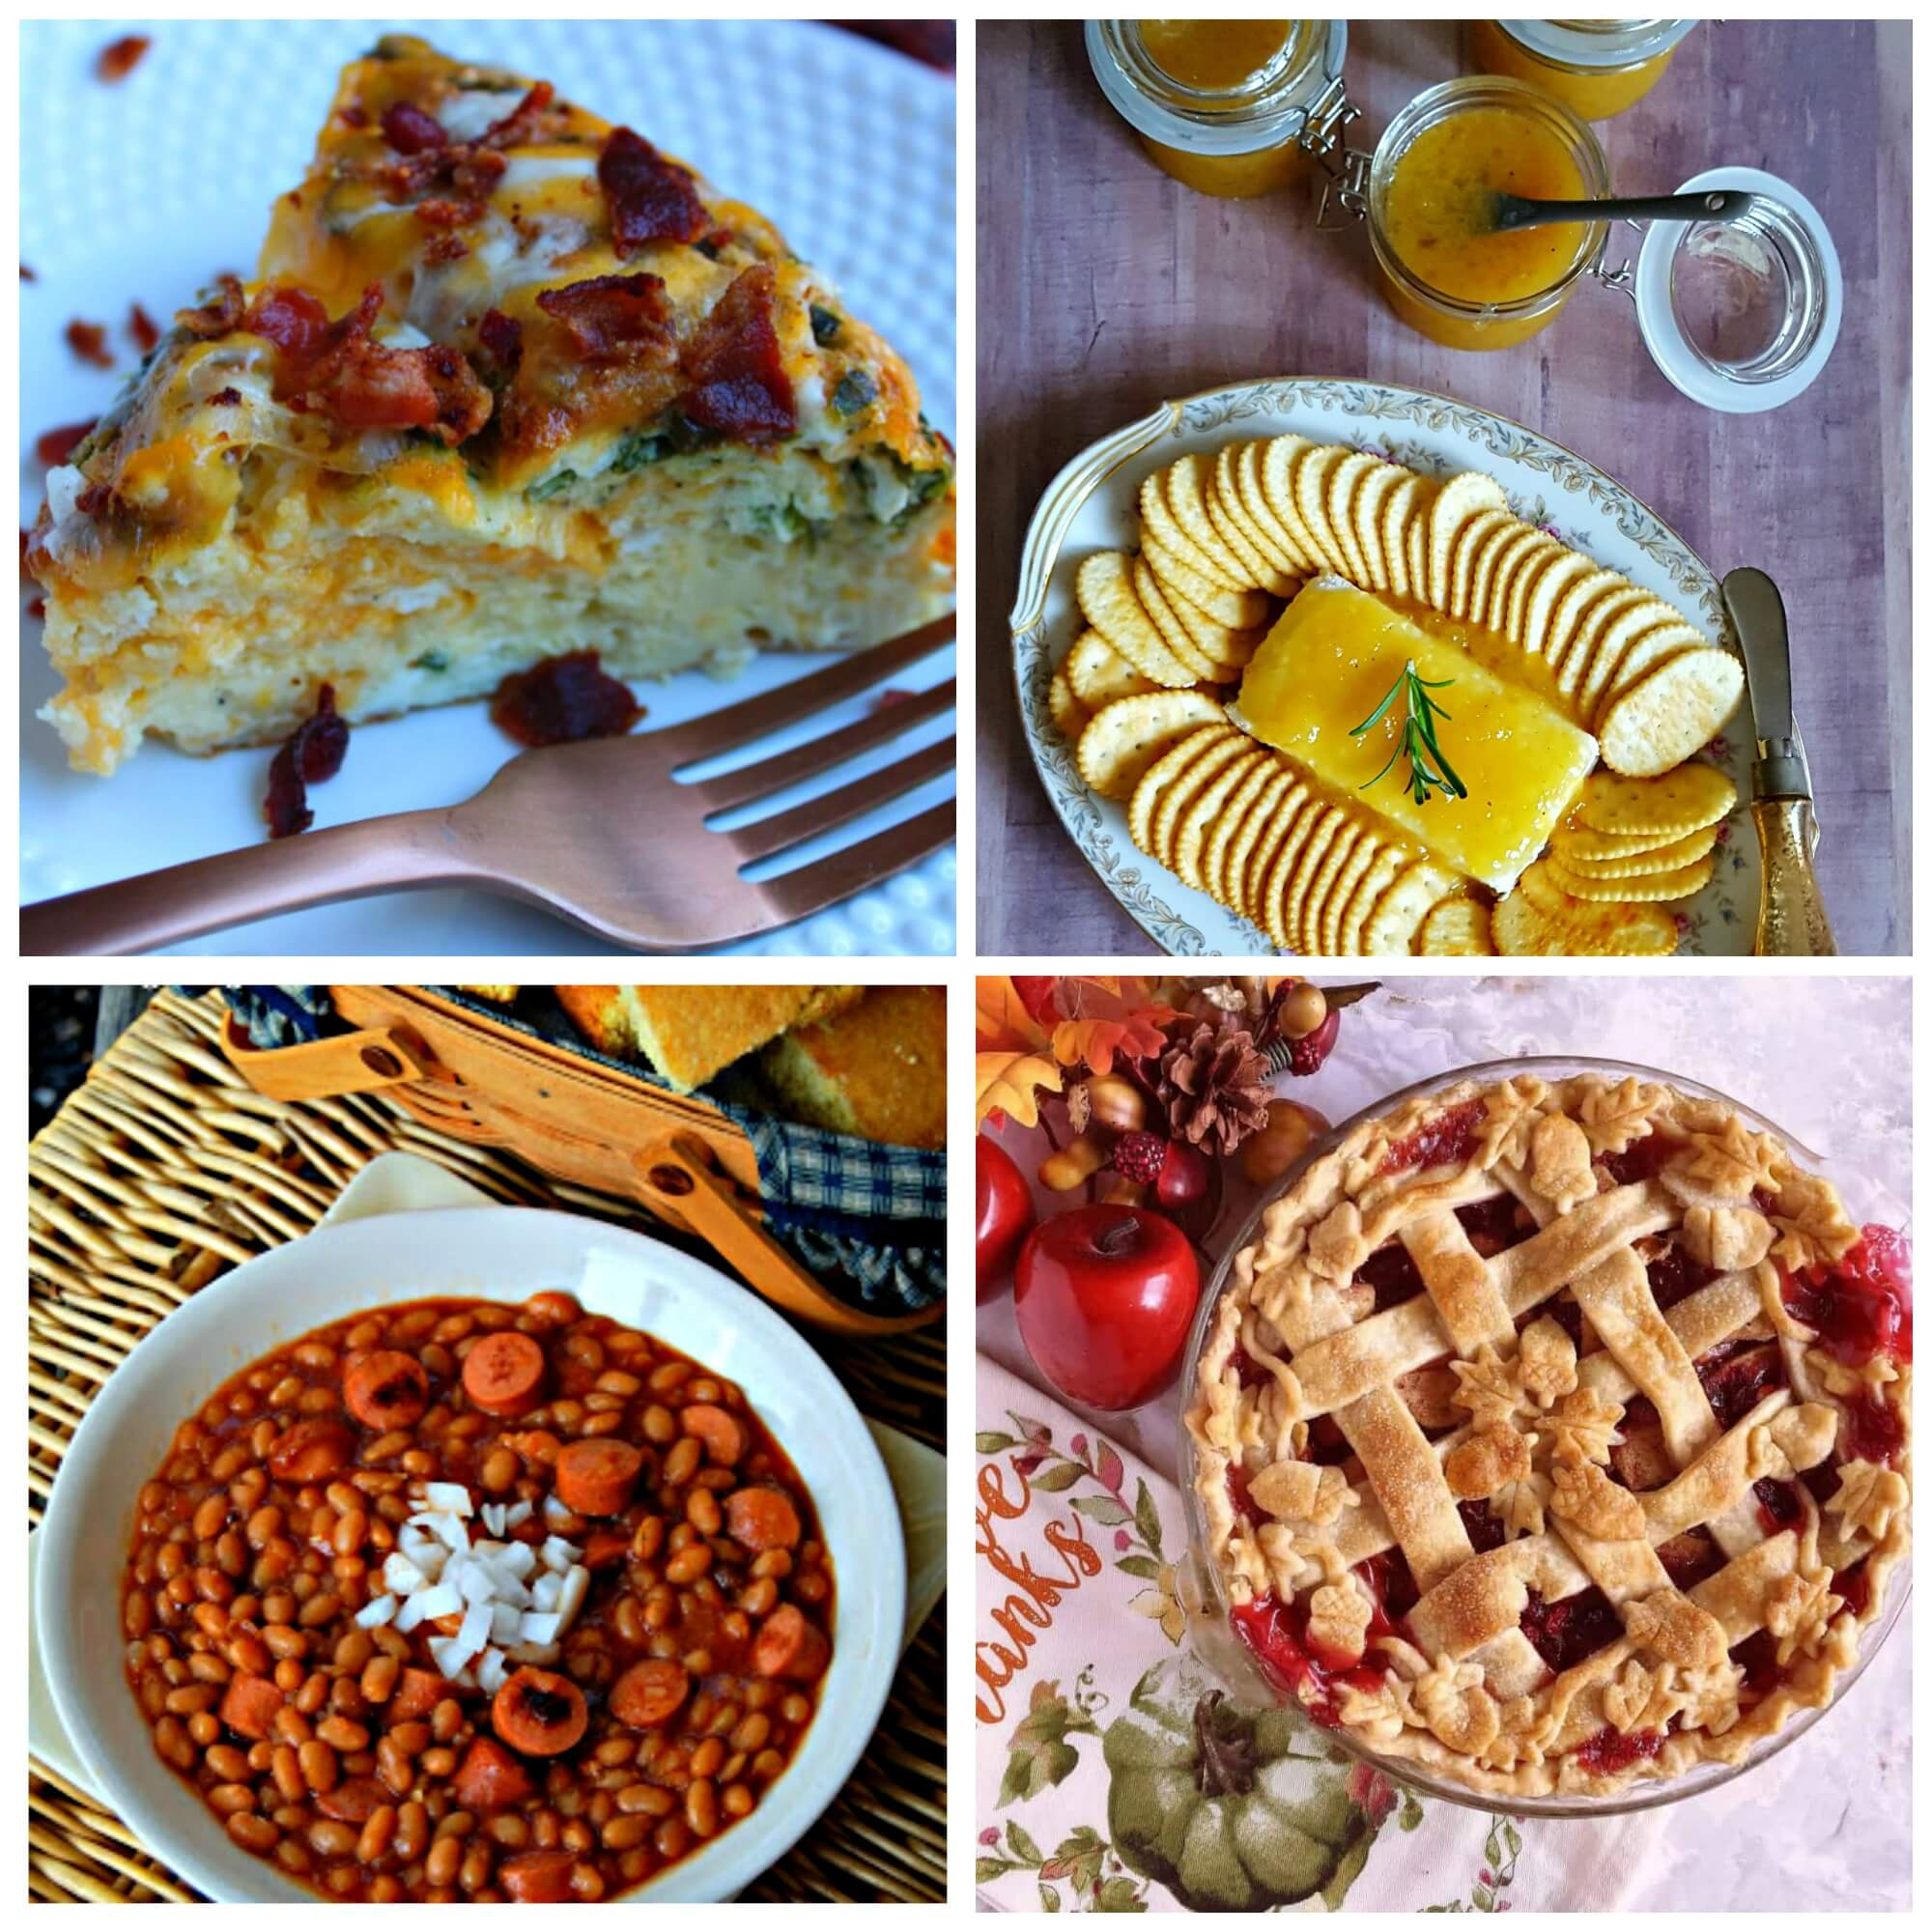 Meal Plan Monday #135 - Easy Breakfast Casserole, Classic Jezebel Sauce, Beans and Weenies and Cranberry Apple Pie